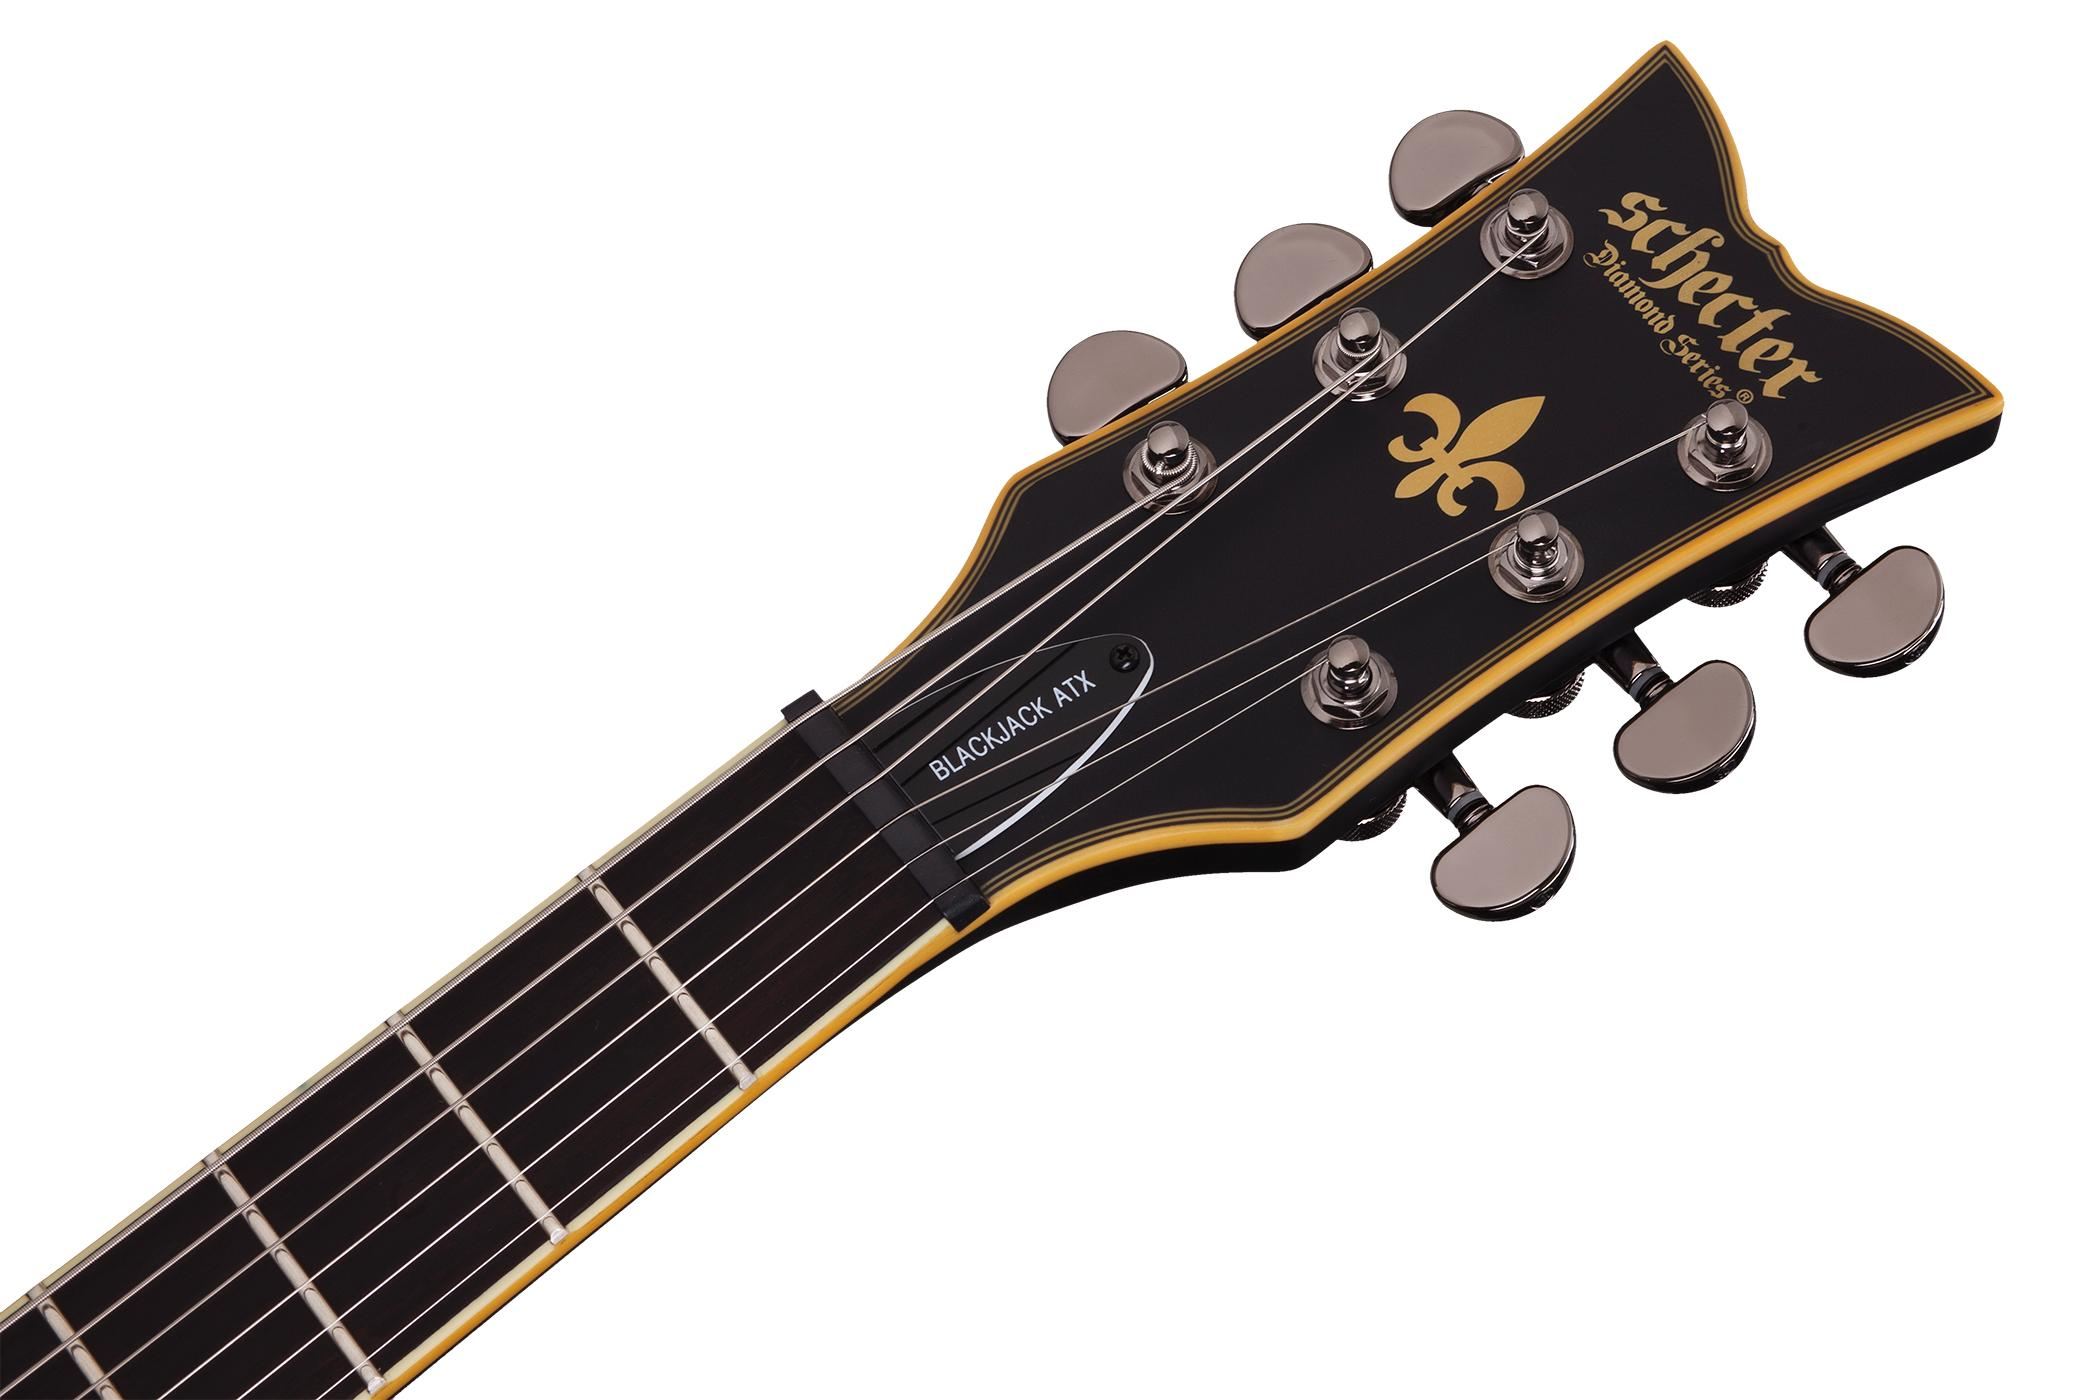 schecter 392 blackjack atx c 7 absn electric guitars musical instruments. Black Bedroom Furniture Sets. Home Design Ideas